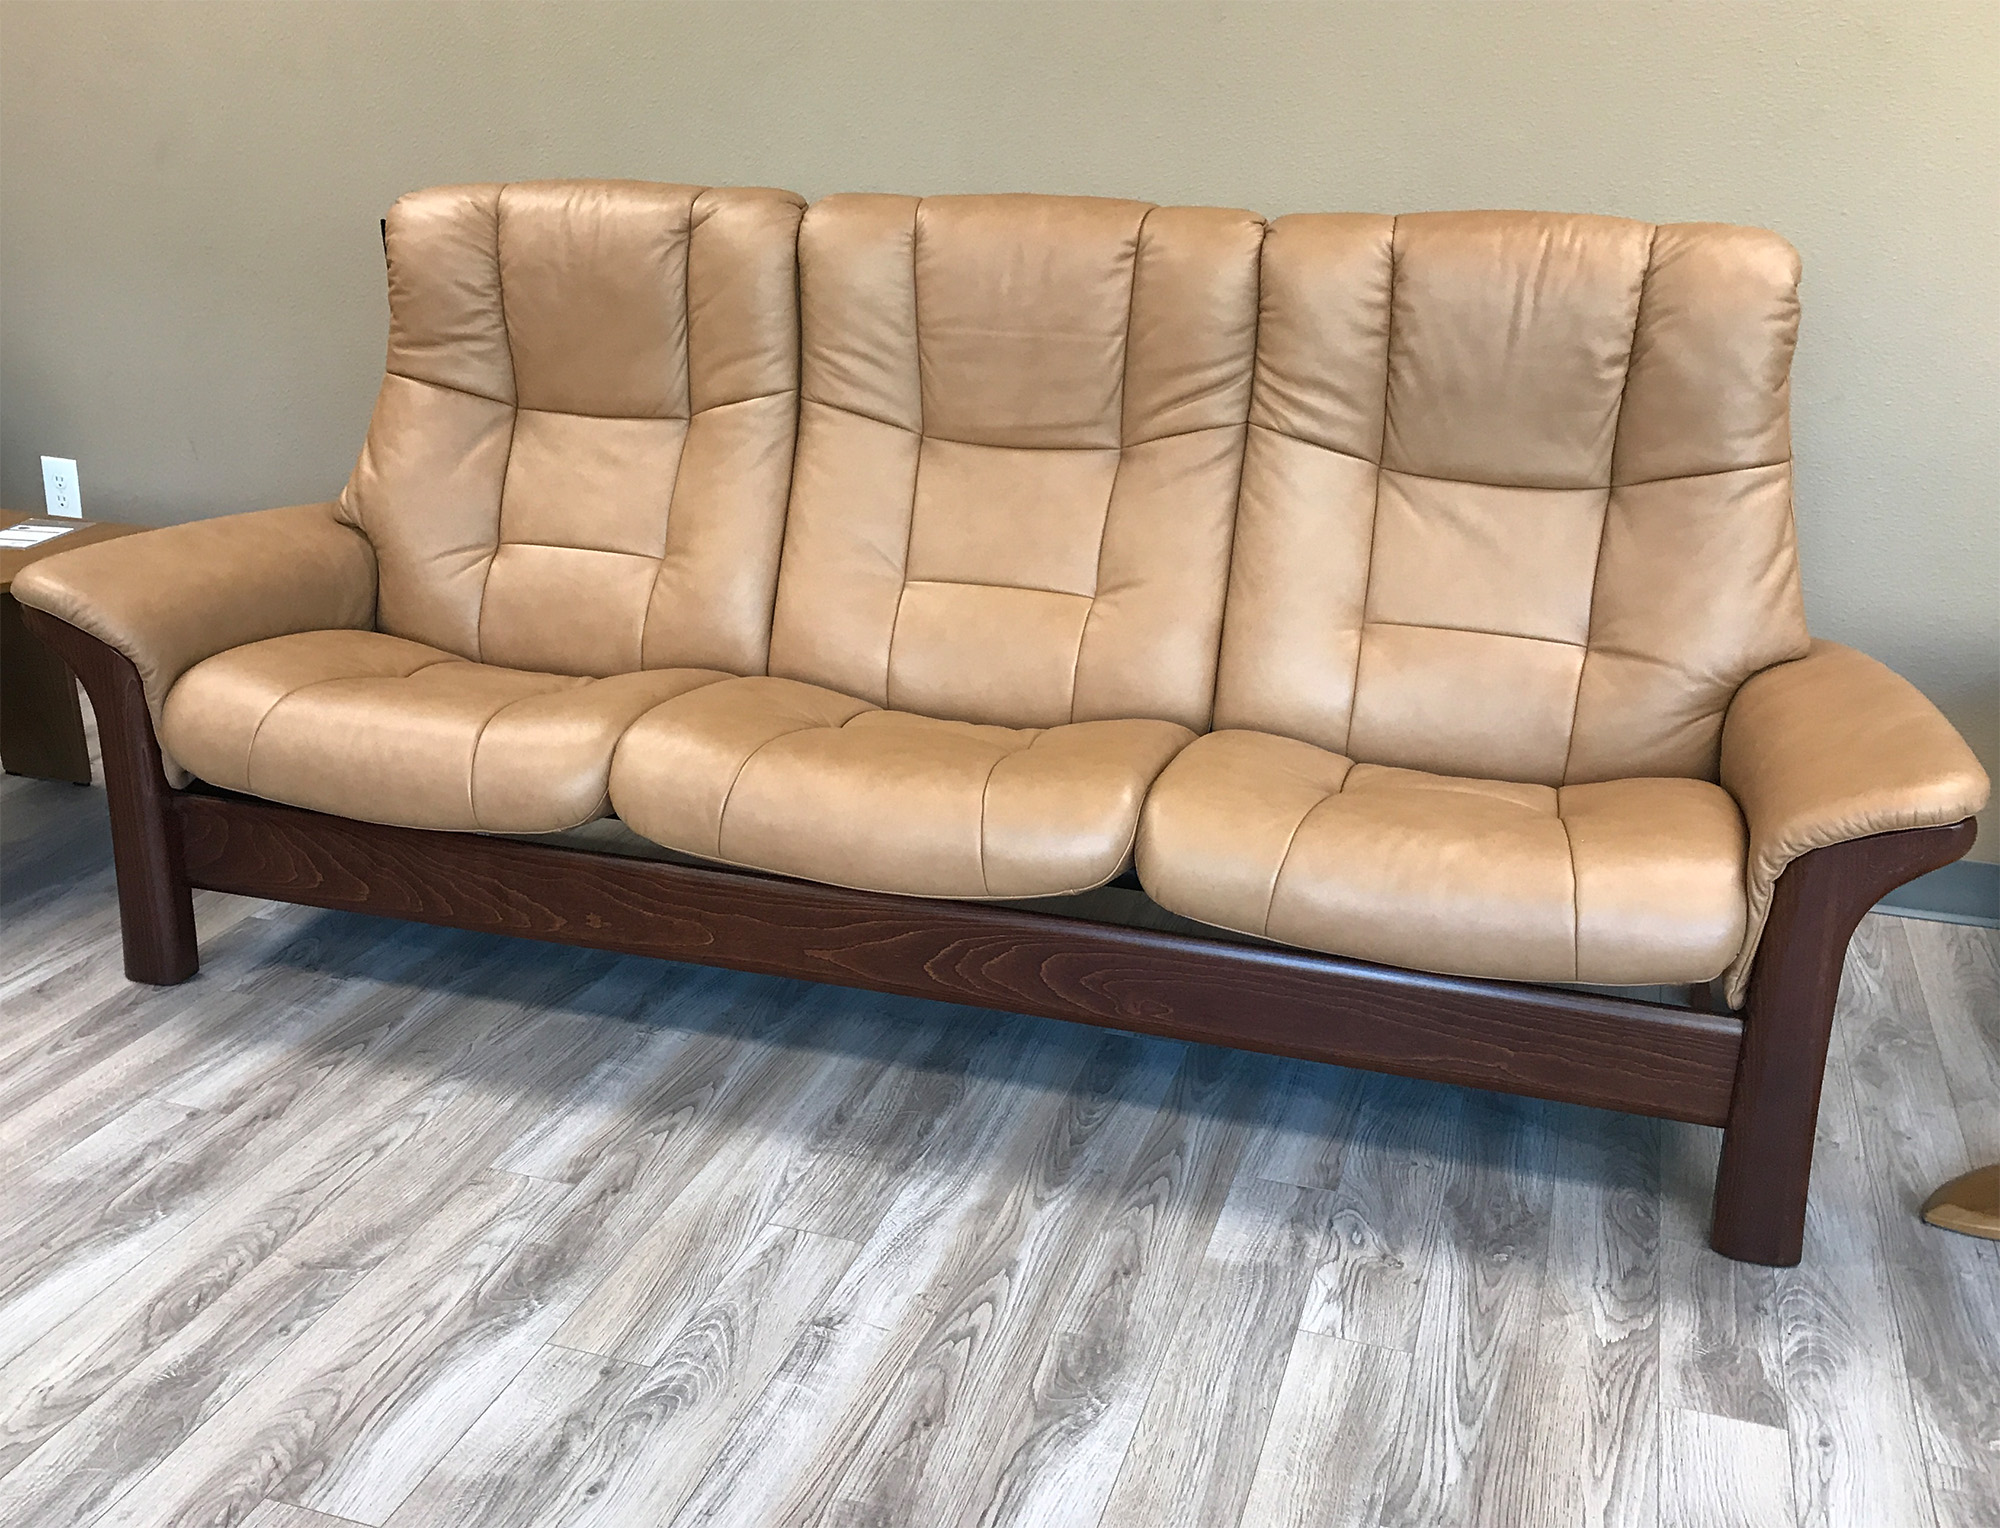 Ekornes Sofa Stressless Buckingham 3 Seat High Back Sofa Paloma Taupe Color Leather By Ekornes